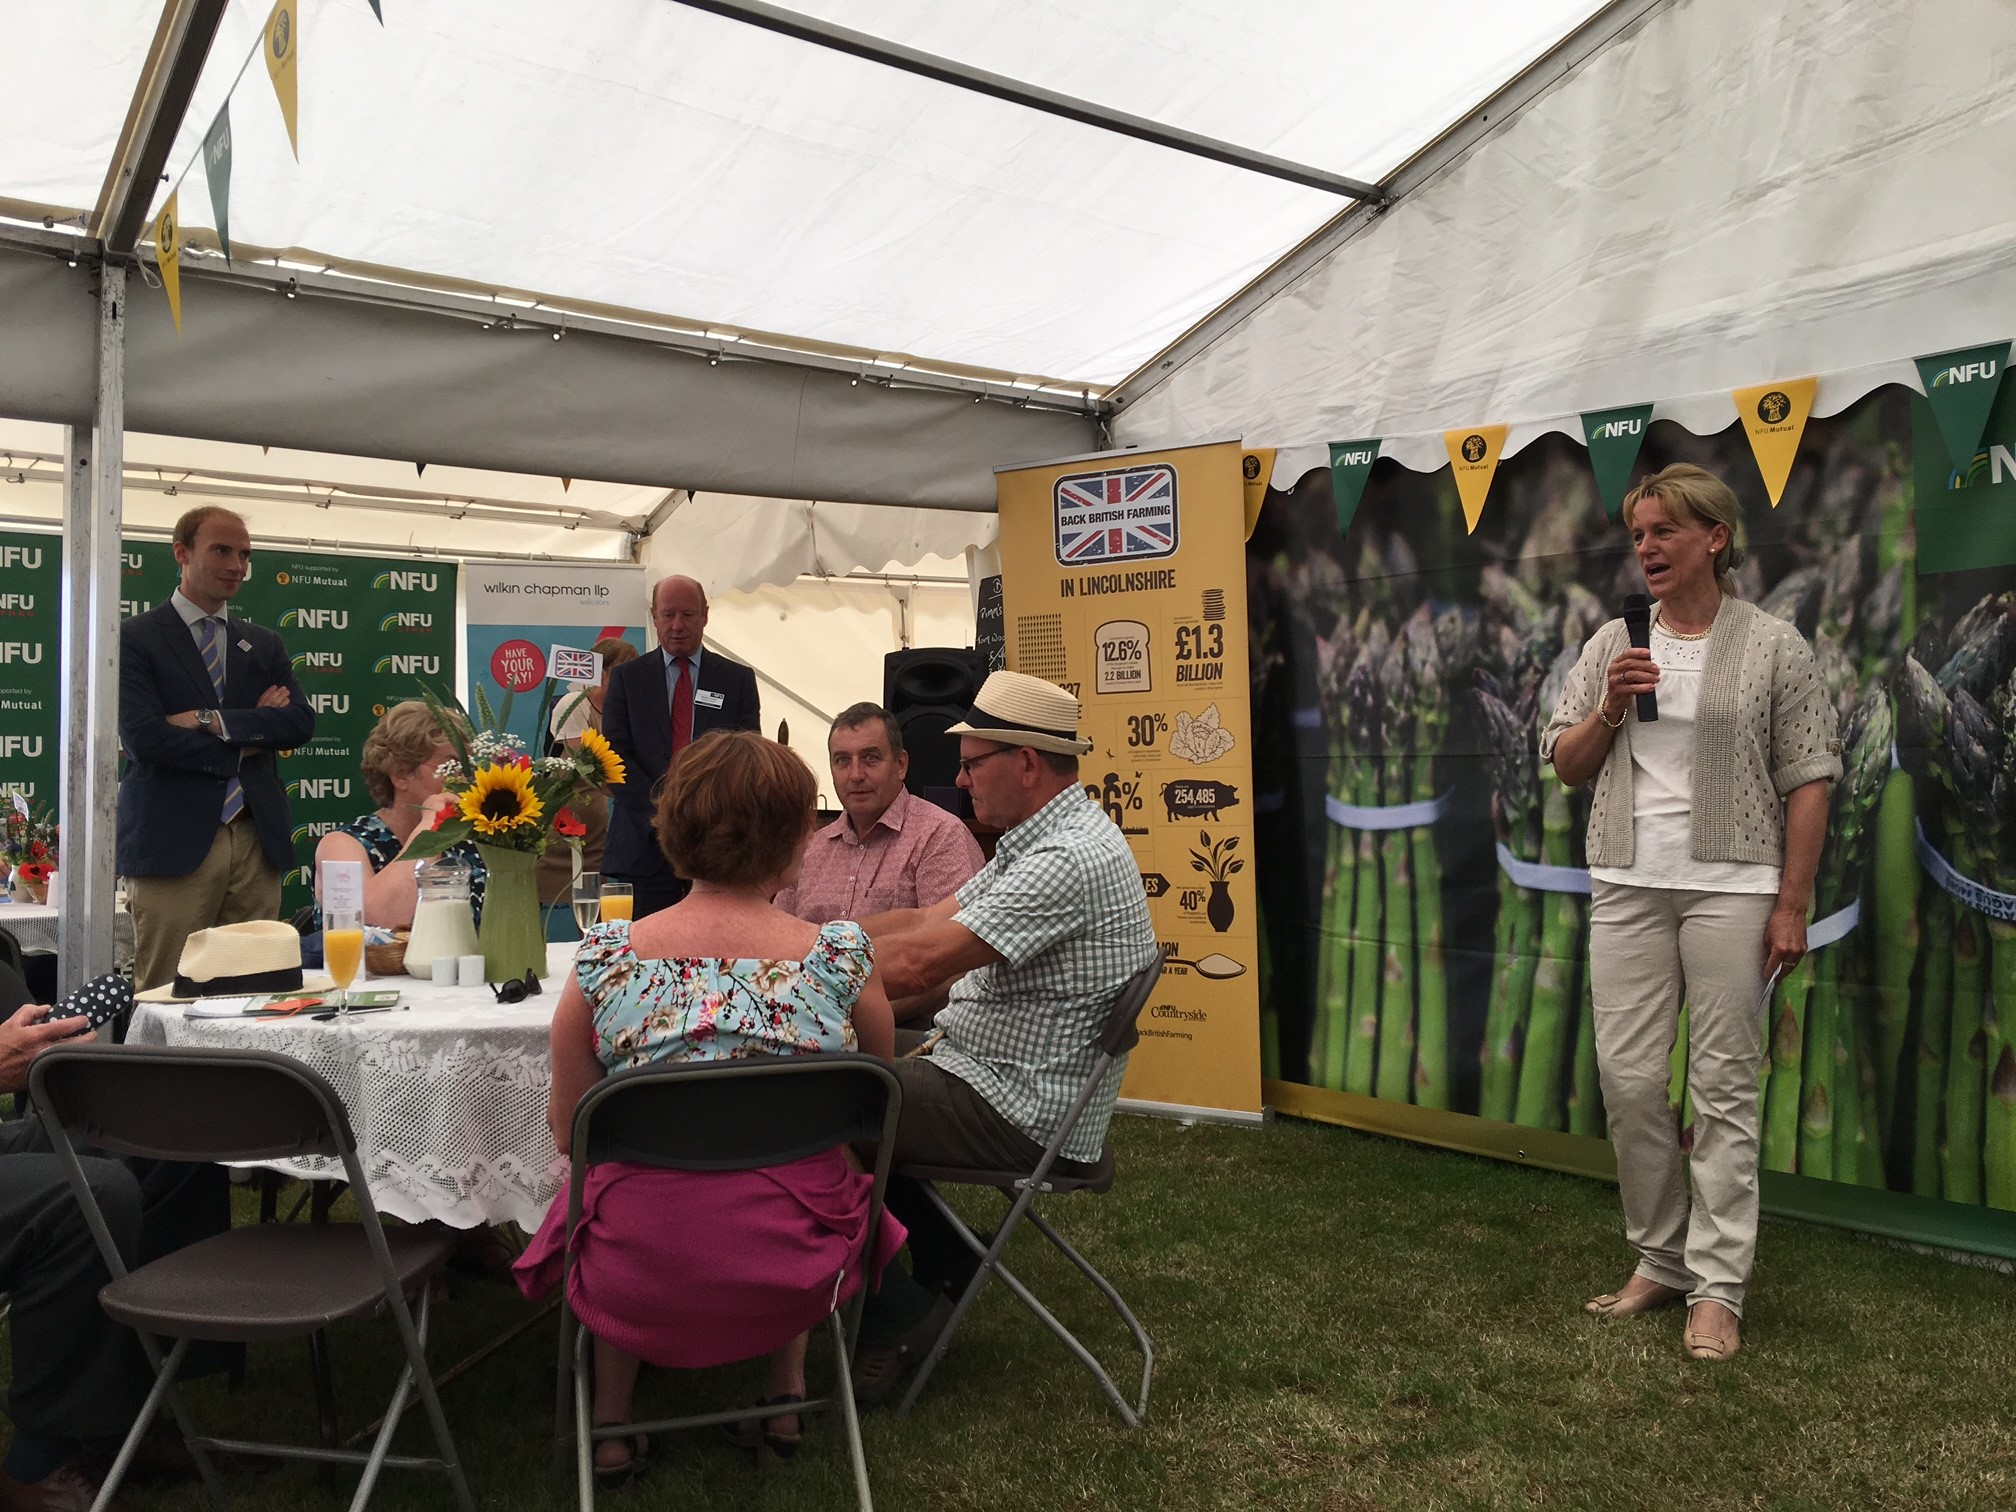 Minette Batters speaking at the NFU reception